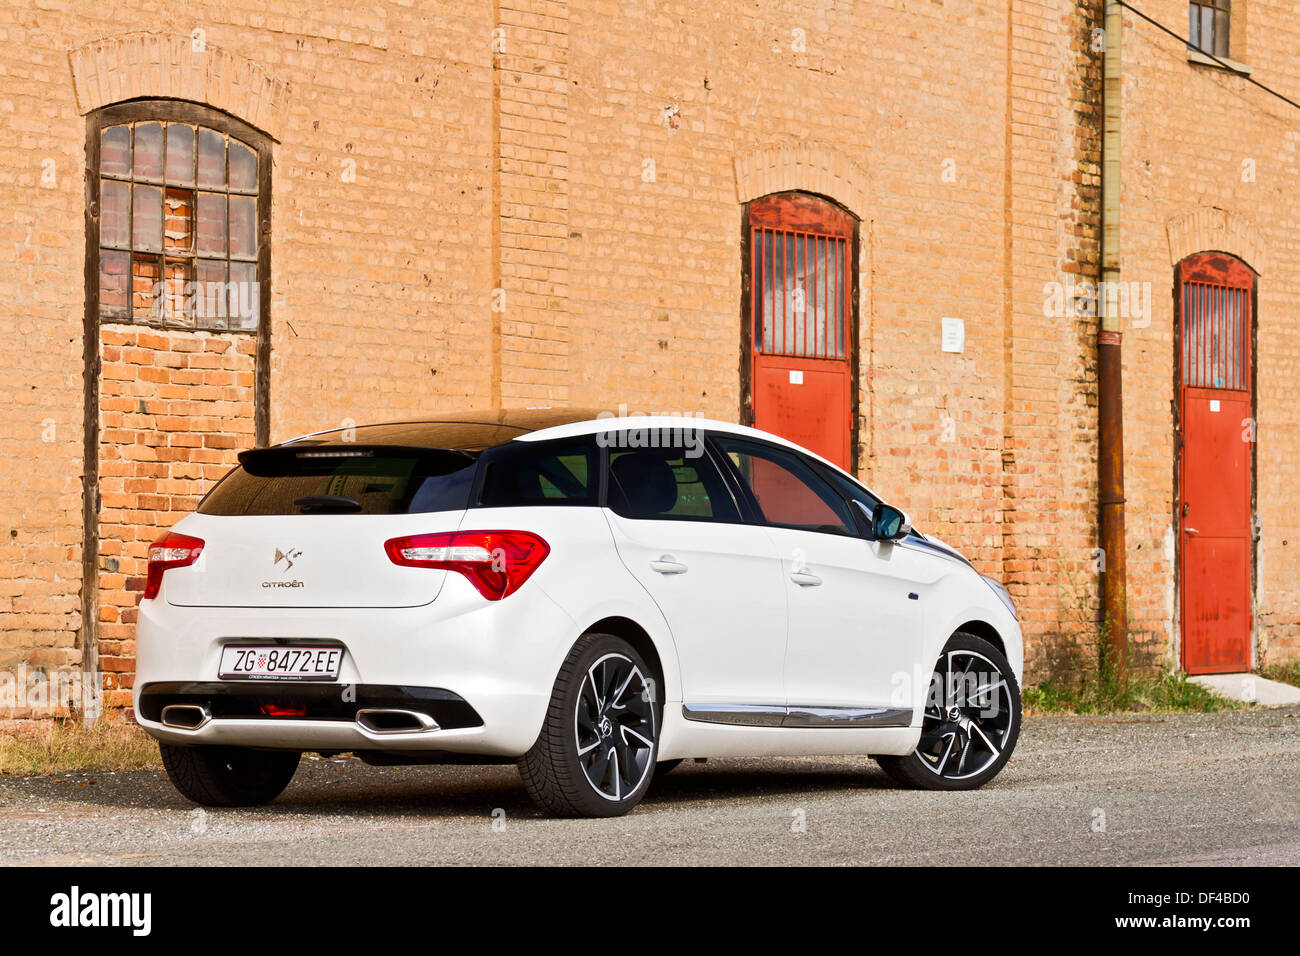 citroen ds5 sport chic hybrid4 airdream stock photo royalty free image 60947740 alamy. Black Bedroom Furniture Sets. Home Design Ideas